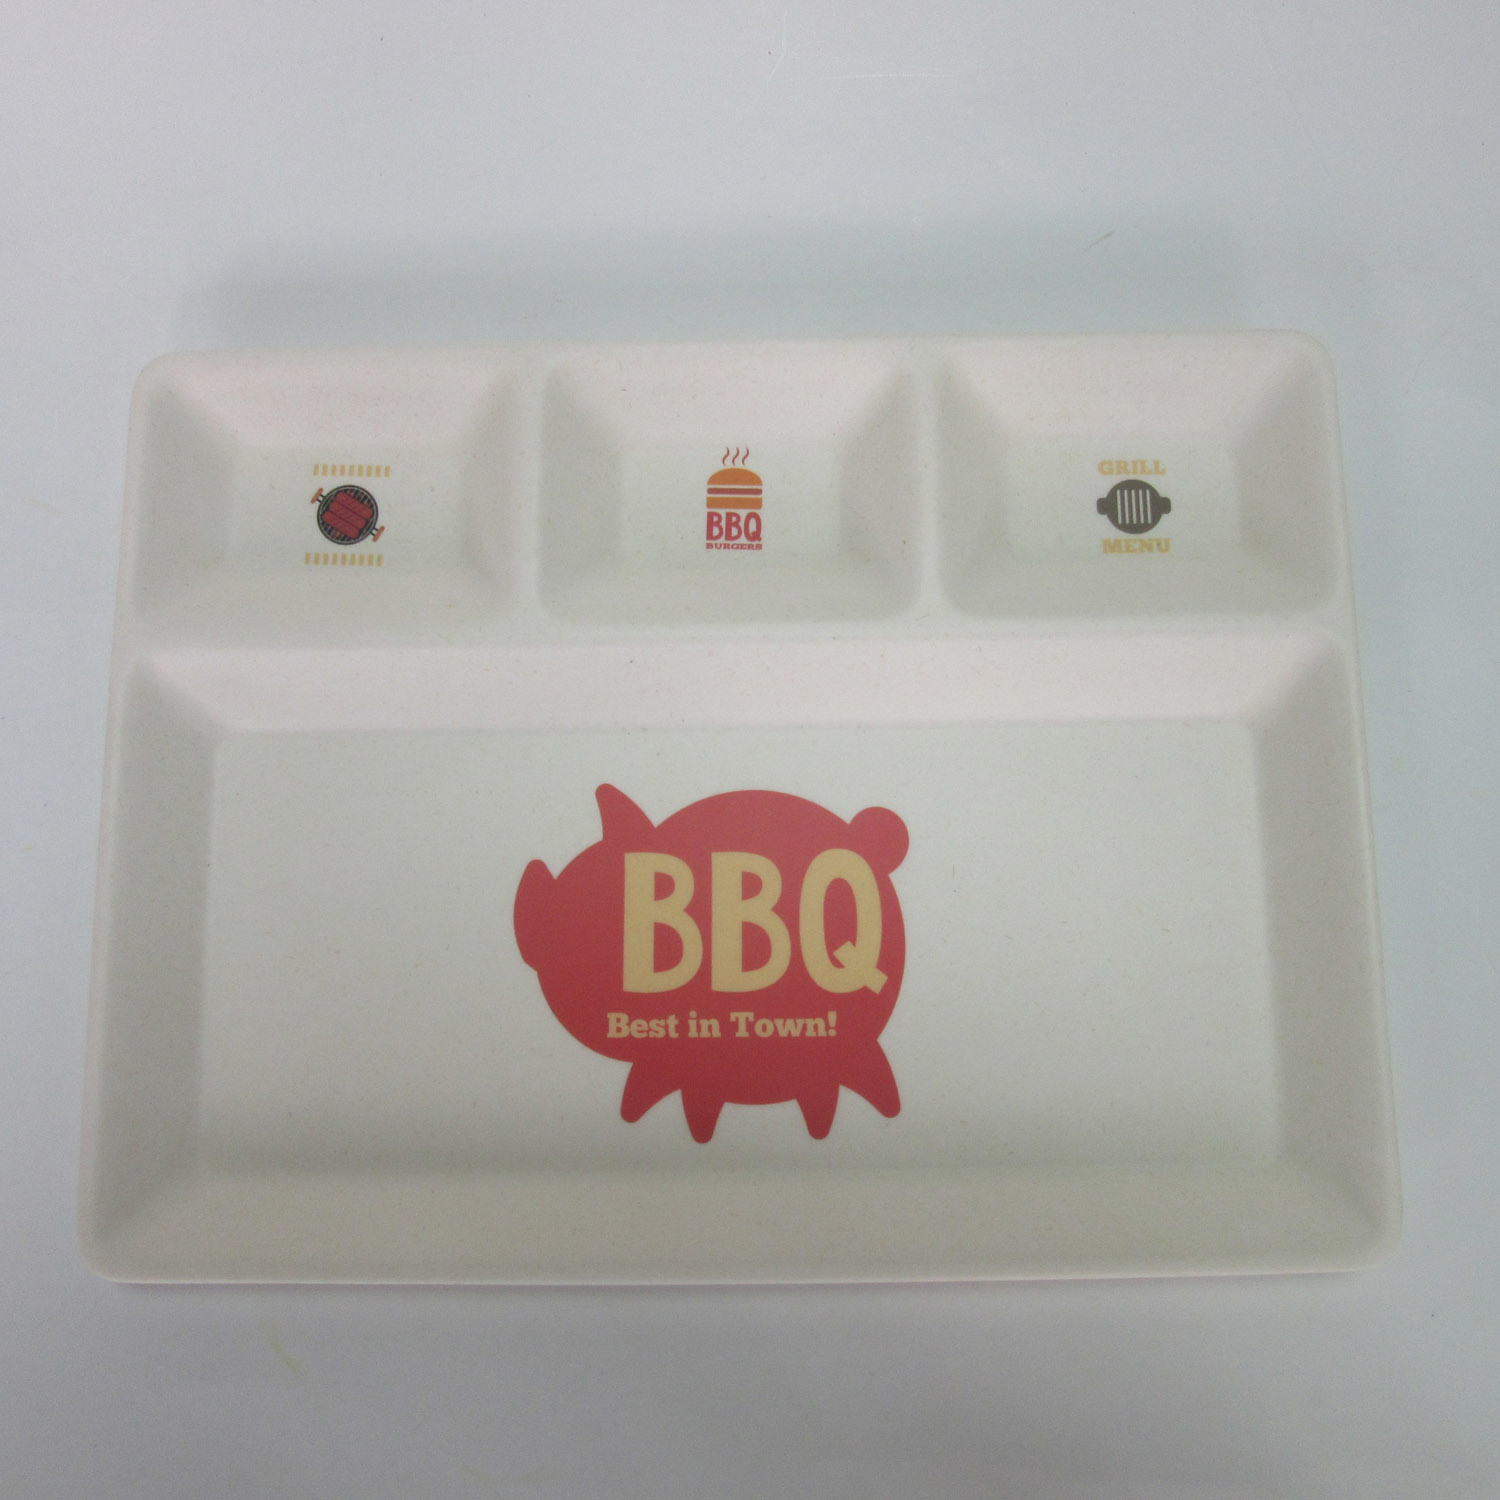 Bamboo Fiber BBQ 4 Divide Plate Small